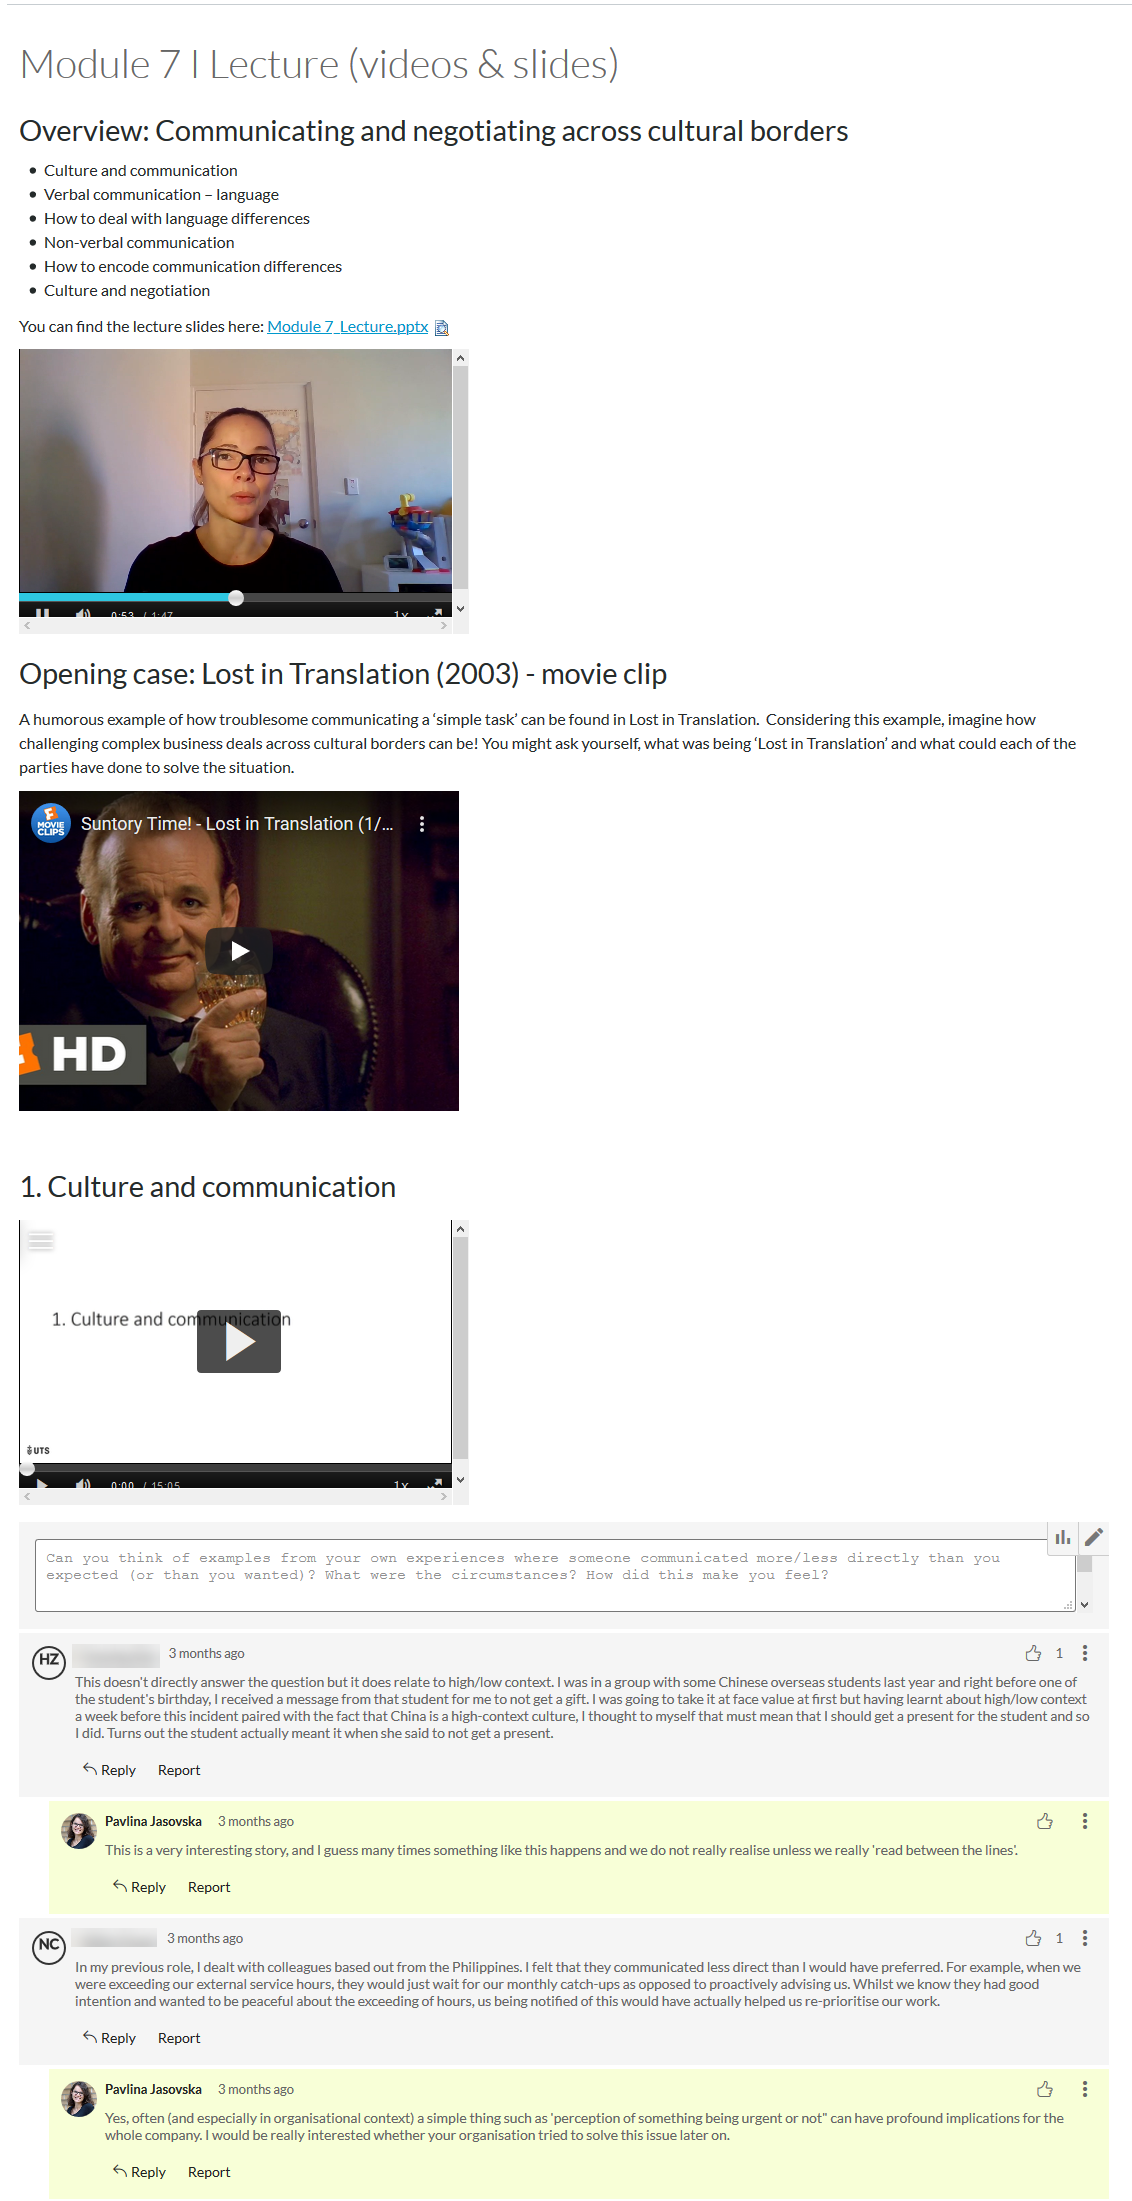 A Canvas page displaying a collection of short videos, which have been broken up with text and a comments box below to allow the students to engage.